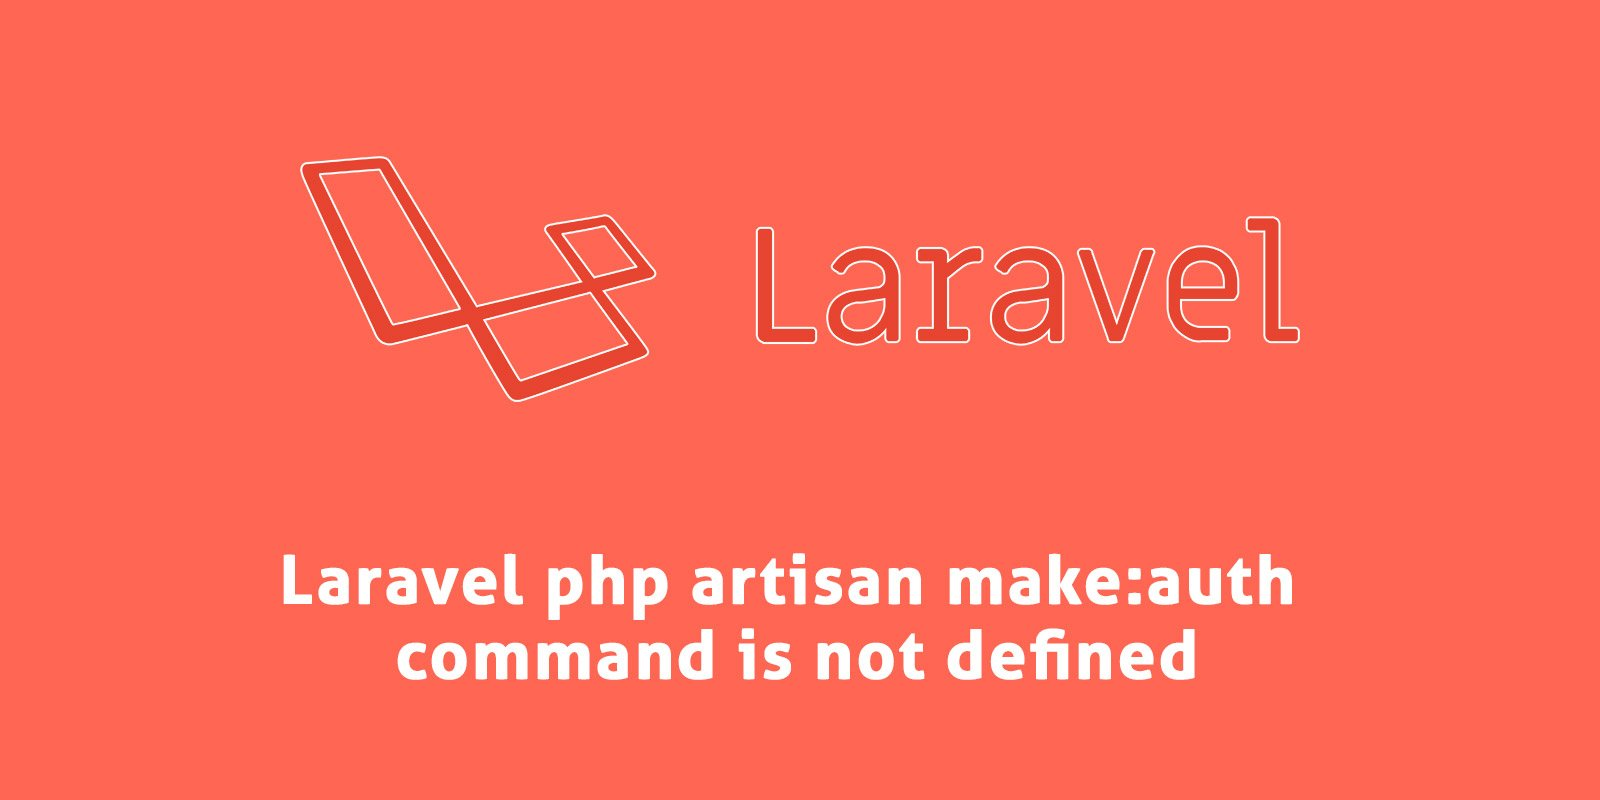 Laravel php artisan make:auth command is not defined